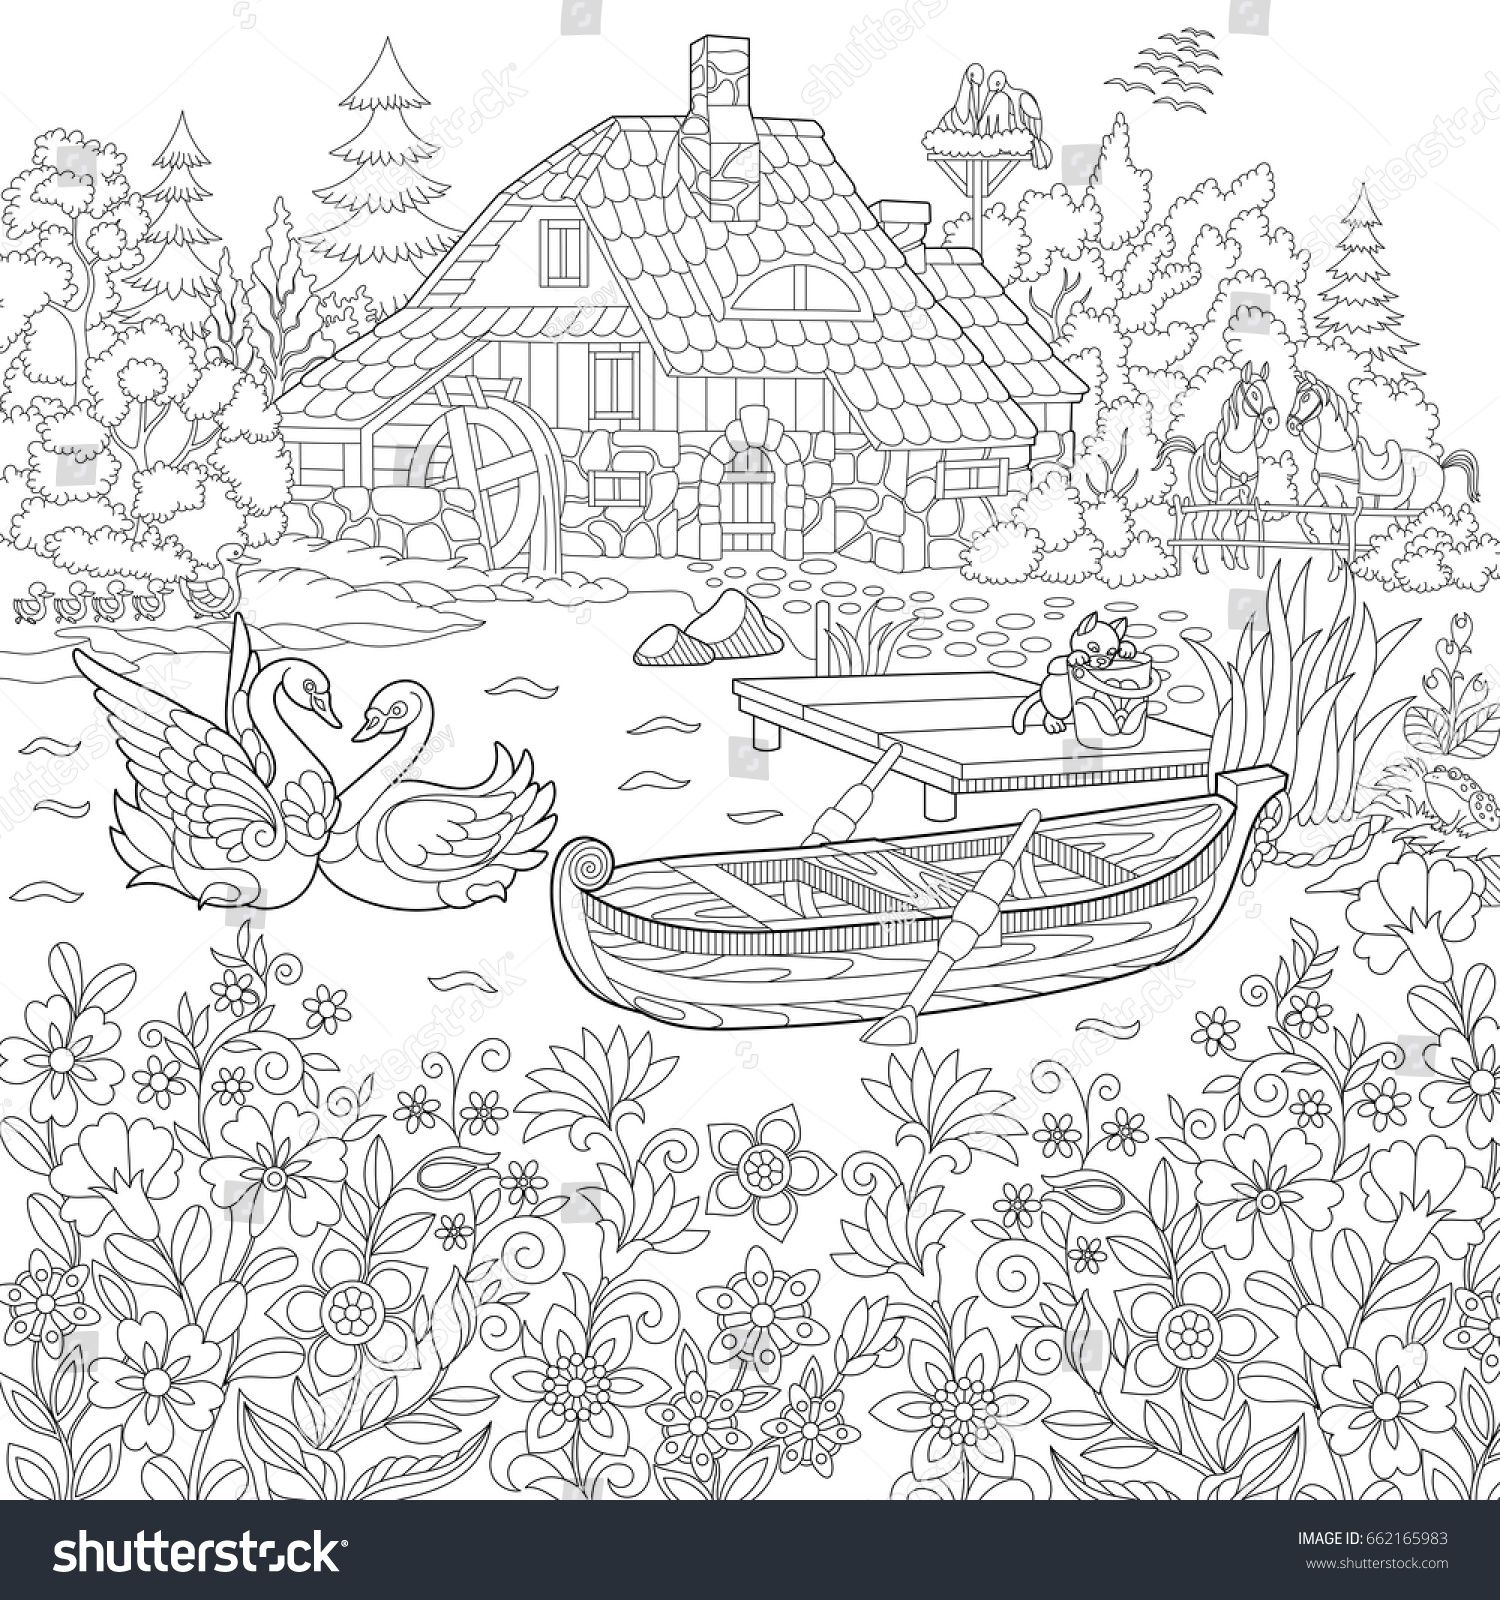 Coloring Book Page Of Rural Landscape Flower Meadow Lake Farm House Ducks Kitten Swans Horses Frog S Farm Coloring Pages Coloring Pages Coloring Books